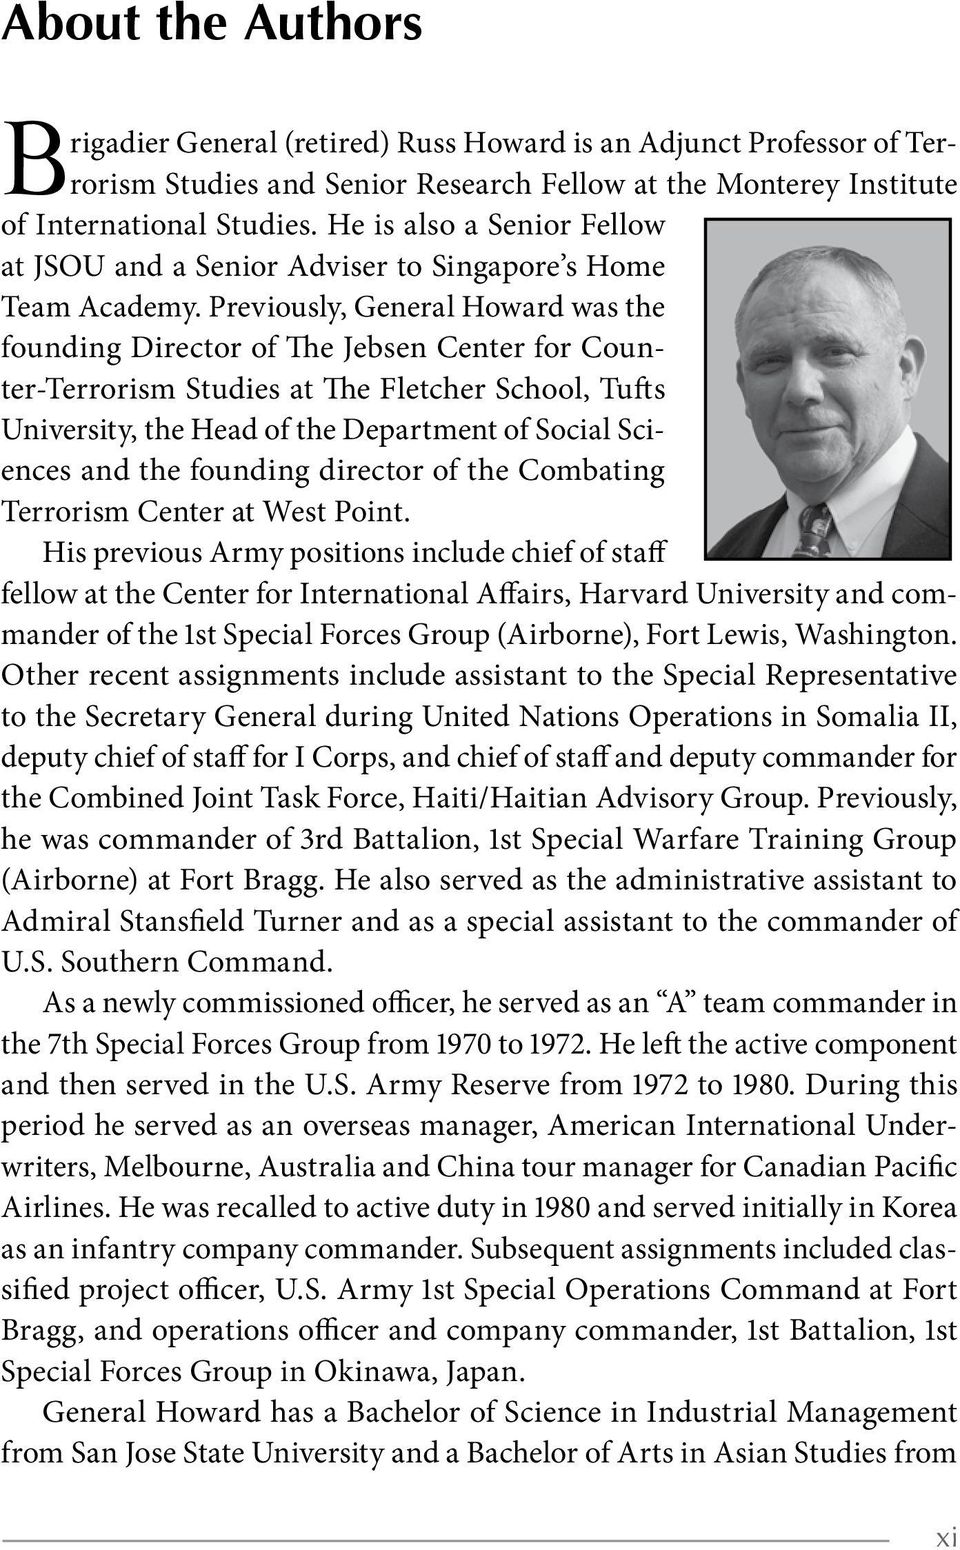 Previously, General Howard was the founding Director of The Jebsen Center for Counter-Terrorism Studies at The Fletcher School, Tufts University, the Head of the Department of Social Sciences and the